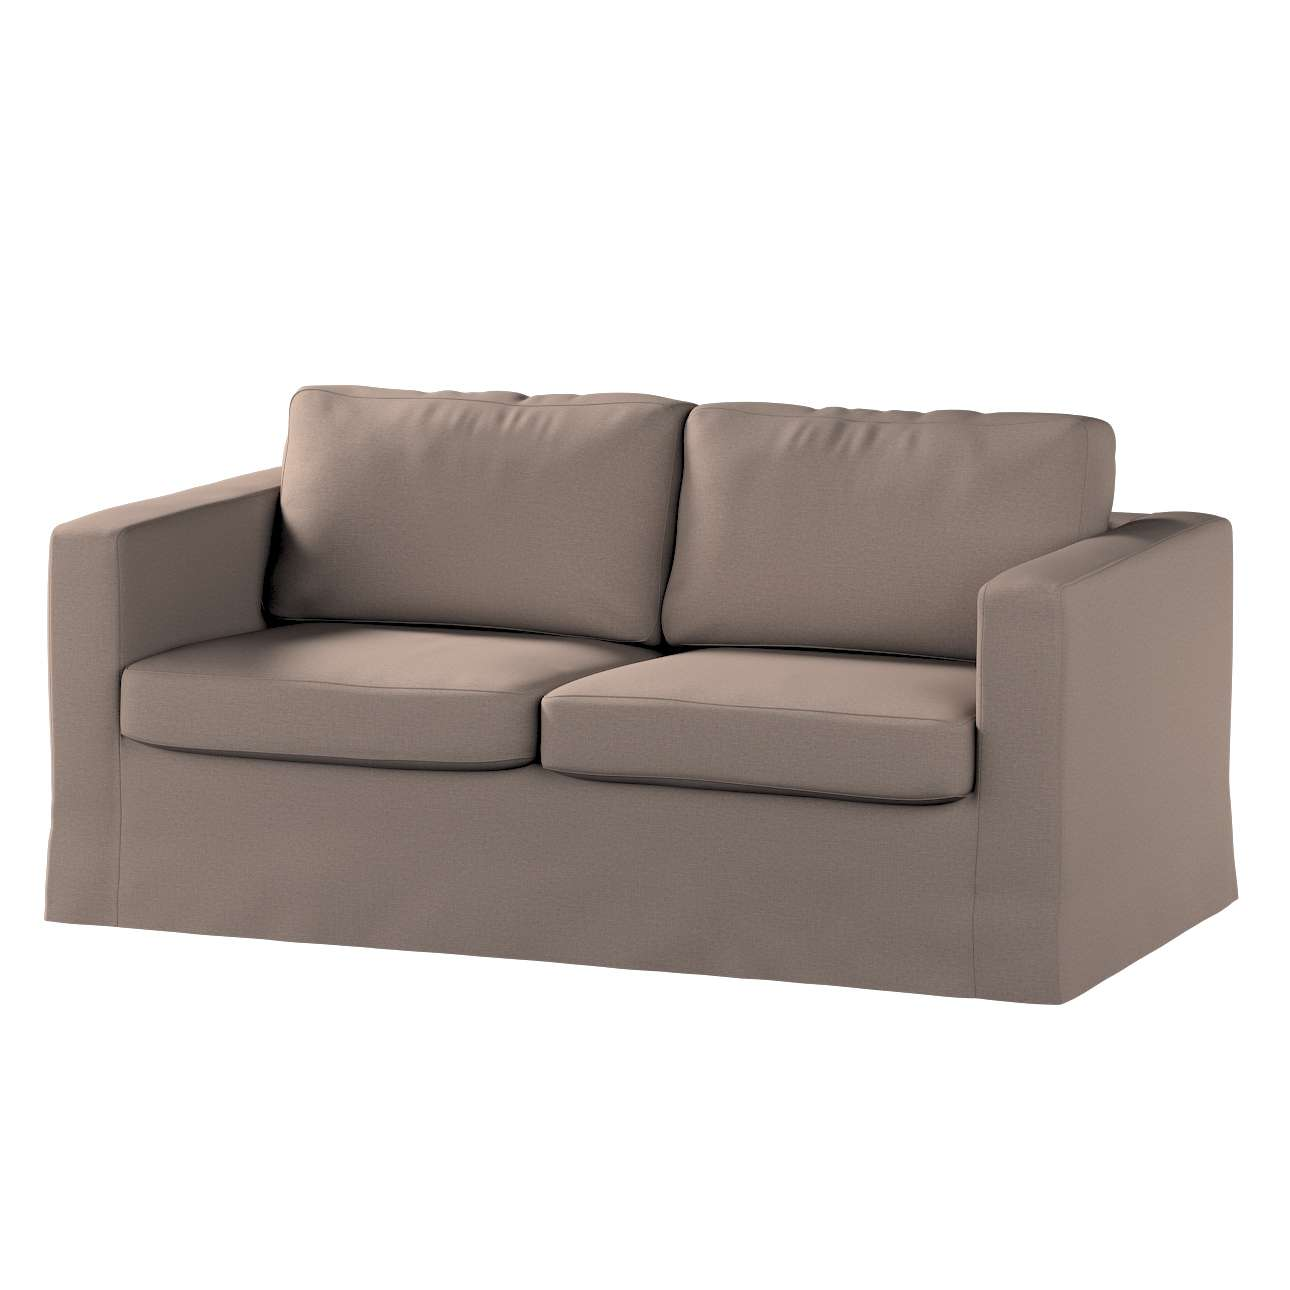 Floor length Karlstad 2-seater sofa cover in collection Living, fabric: 160-16